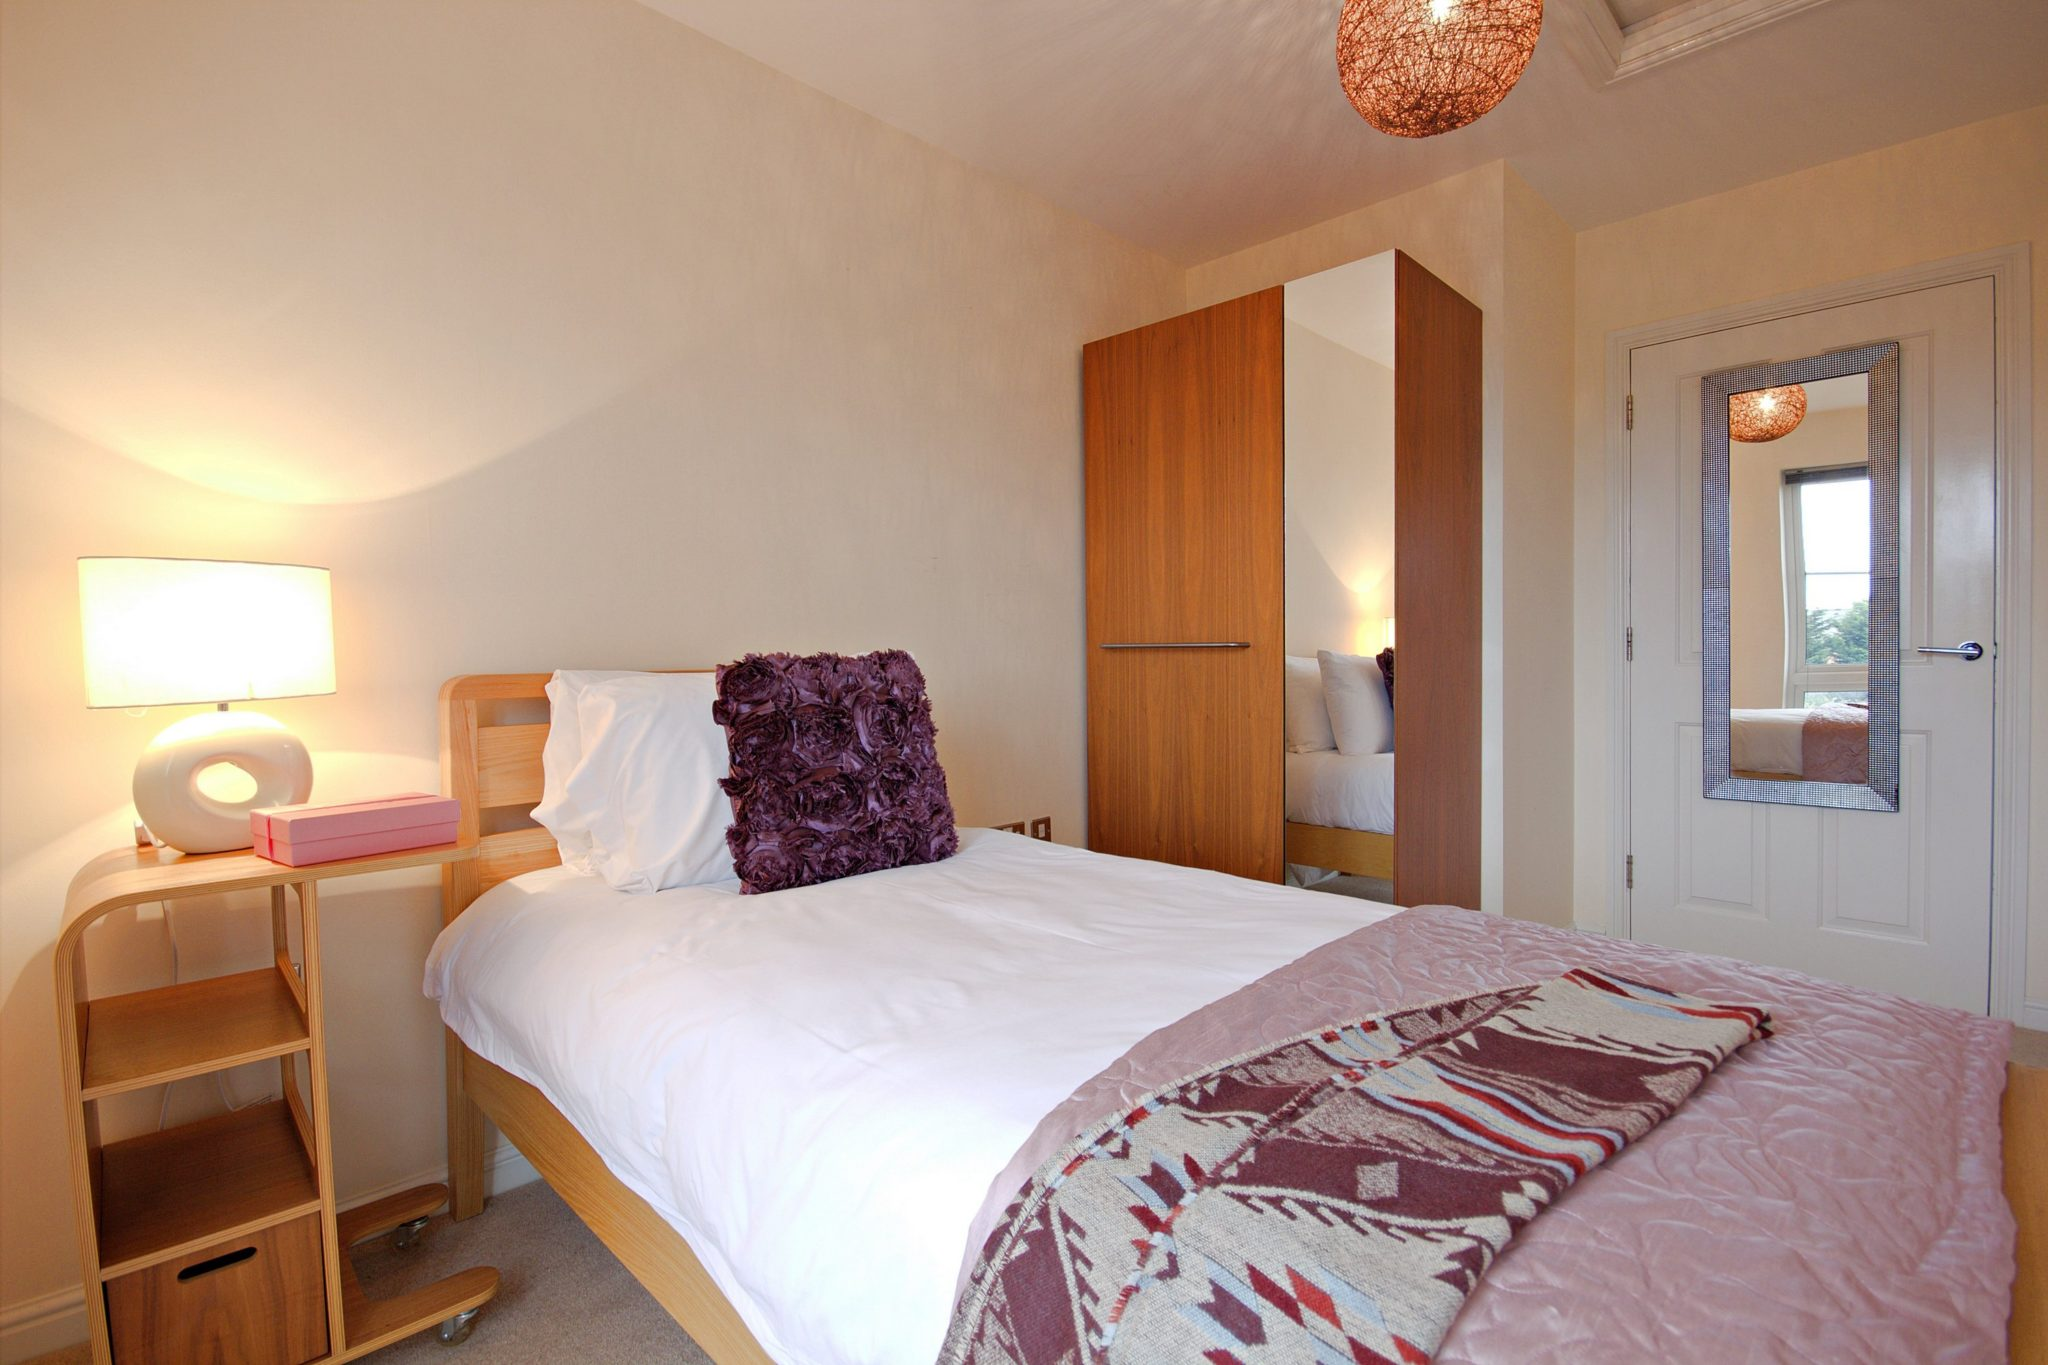 Windsor-Serviced-Apartments-Trevelyan-Court-Accommodation-Available-Now!-Book-cheap-accommodation-in-Berkshire-with-Fully-Equipped-Kitchen-&-Housekeeping